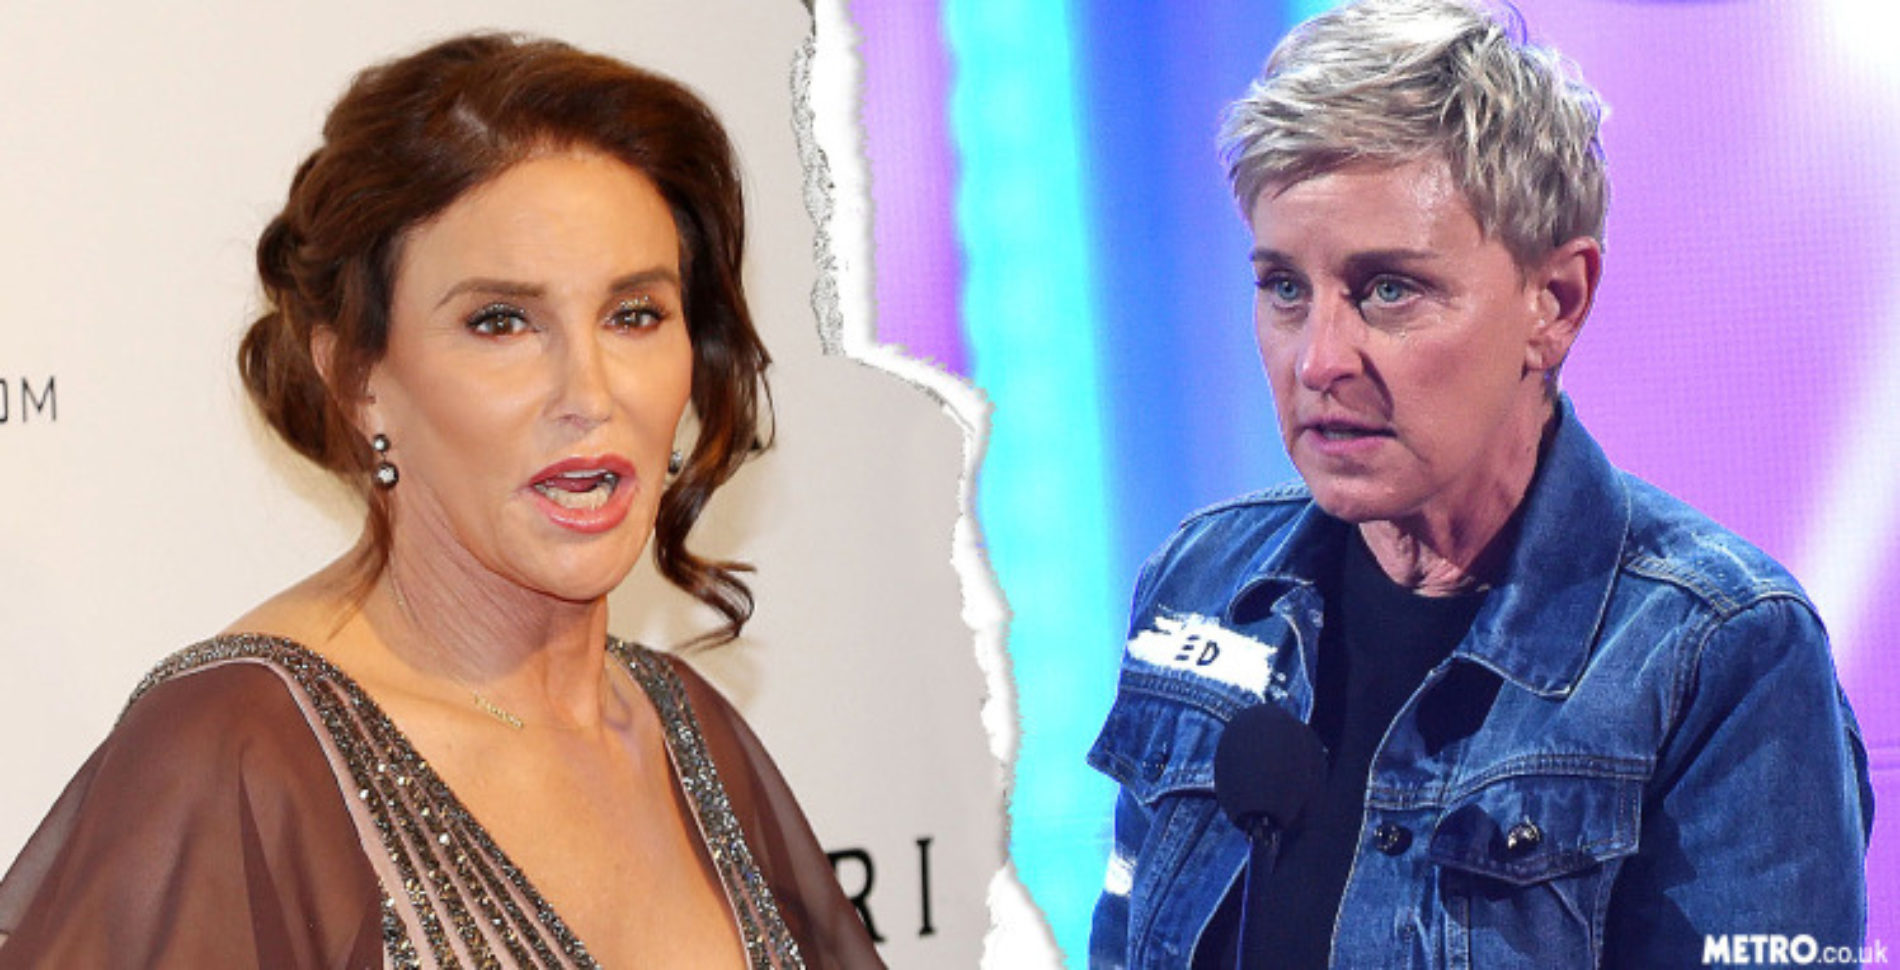 Caitlyn Jenner blasts Ellen DeGeneres, claiming The Ellen Show interview 'alienated' her from 'LGBTQ community'